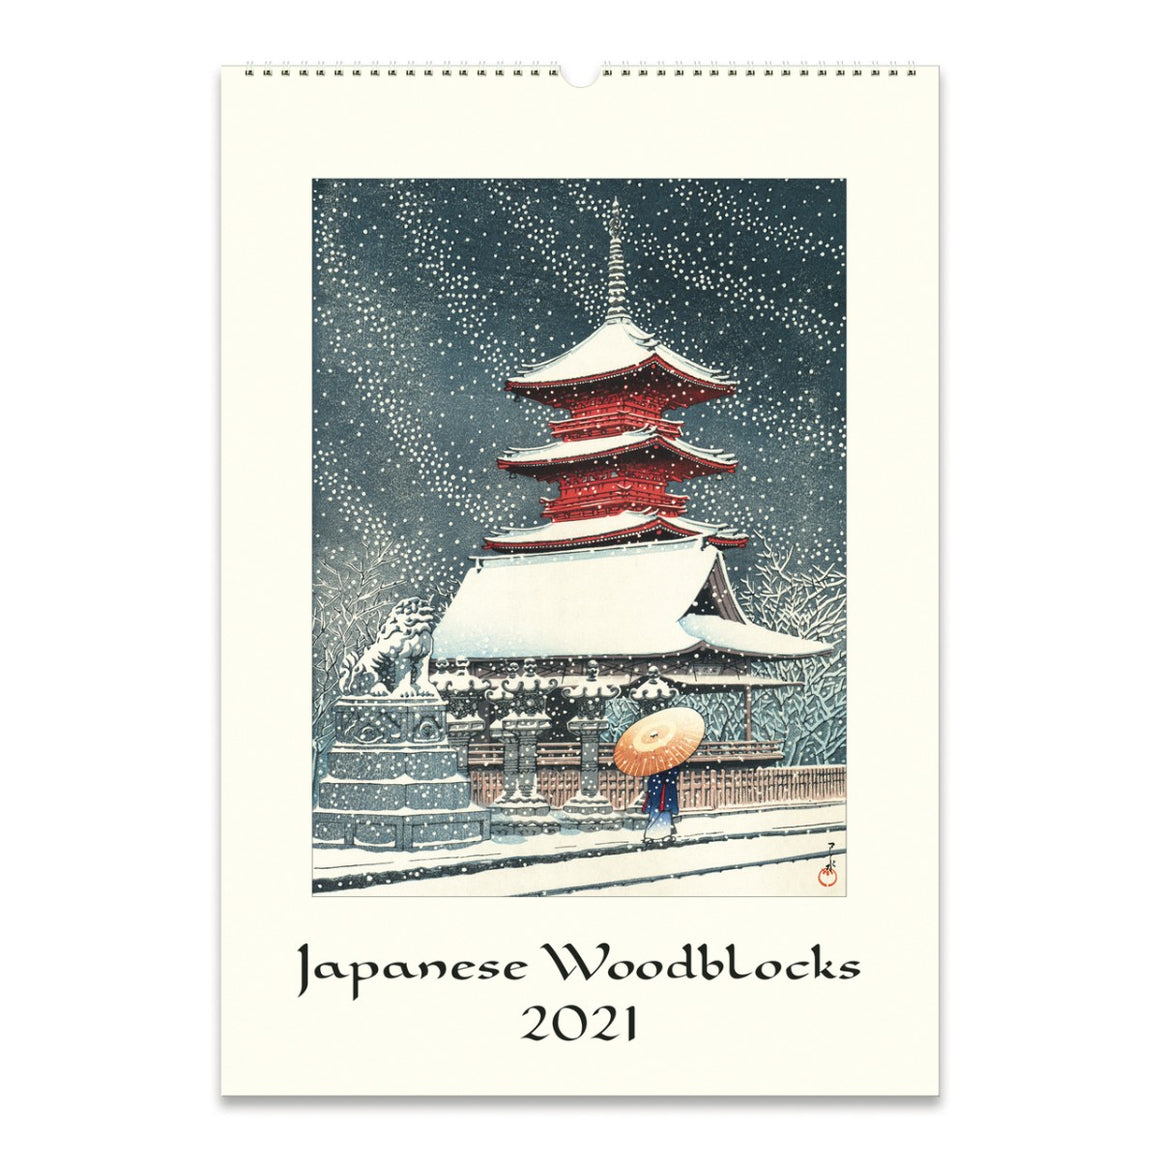 A 2021 Wall calendar featuring Japanese Woodblock image in bold colours.